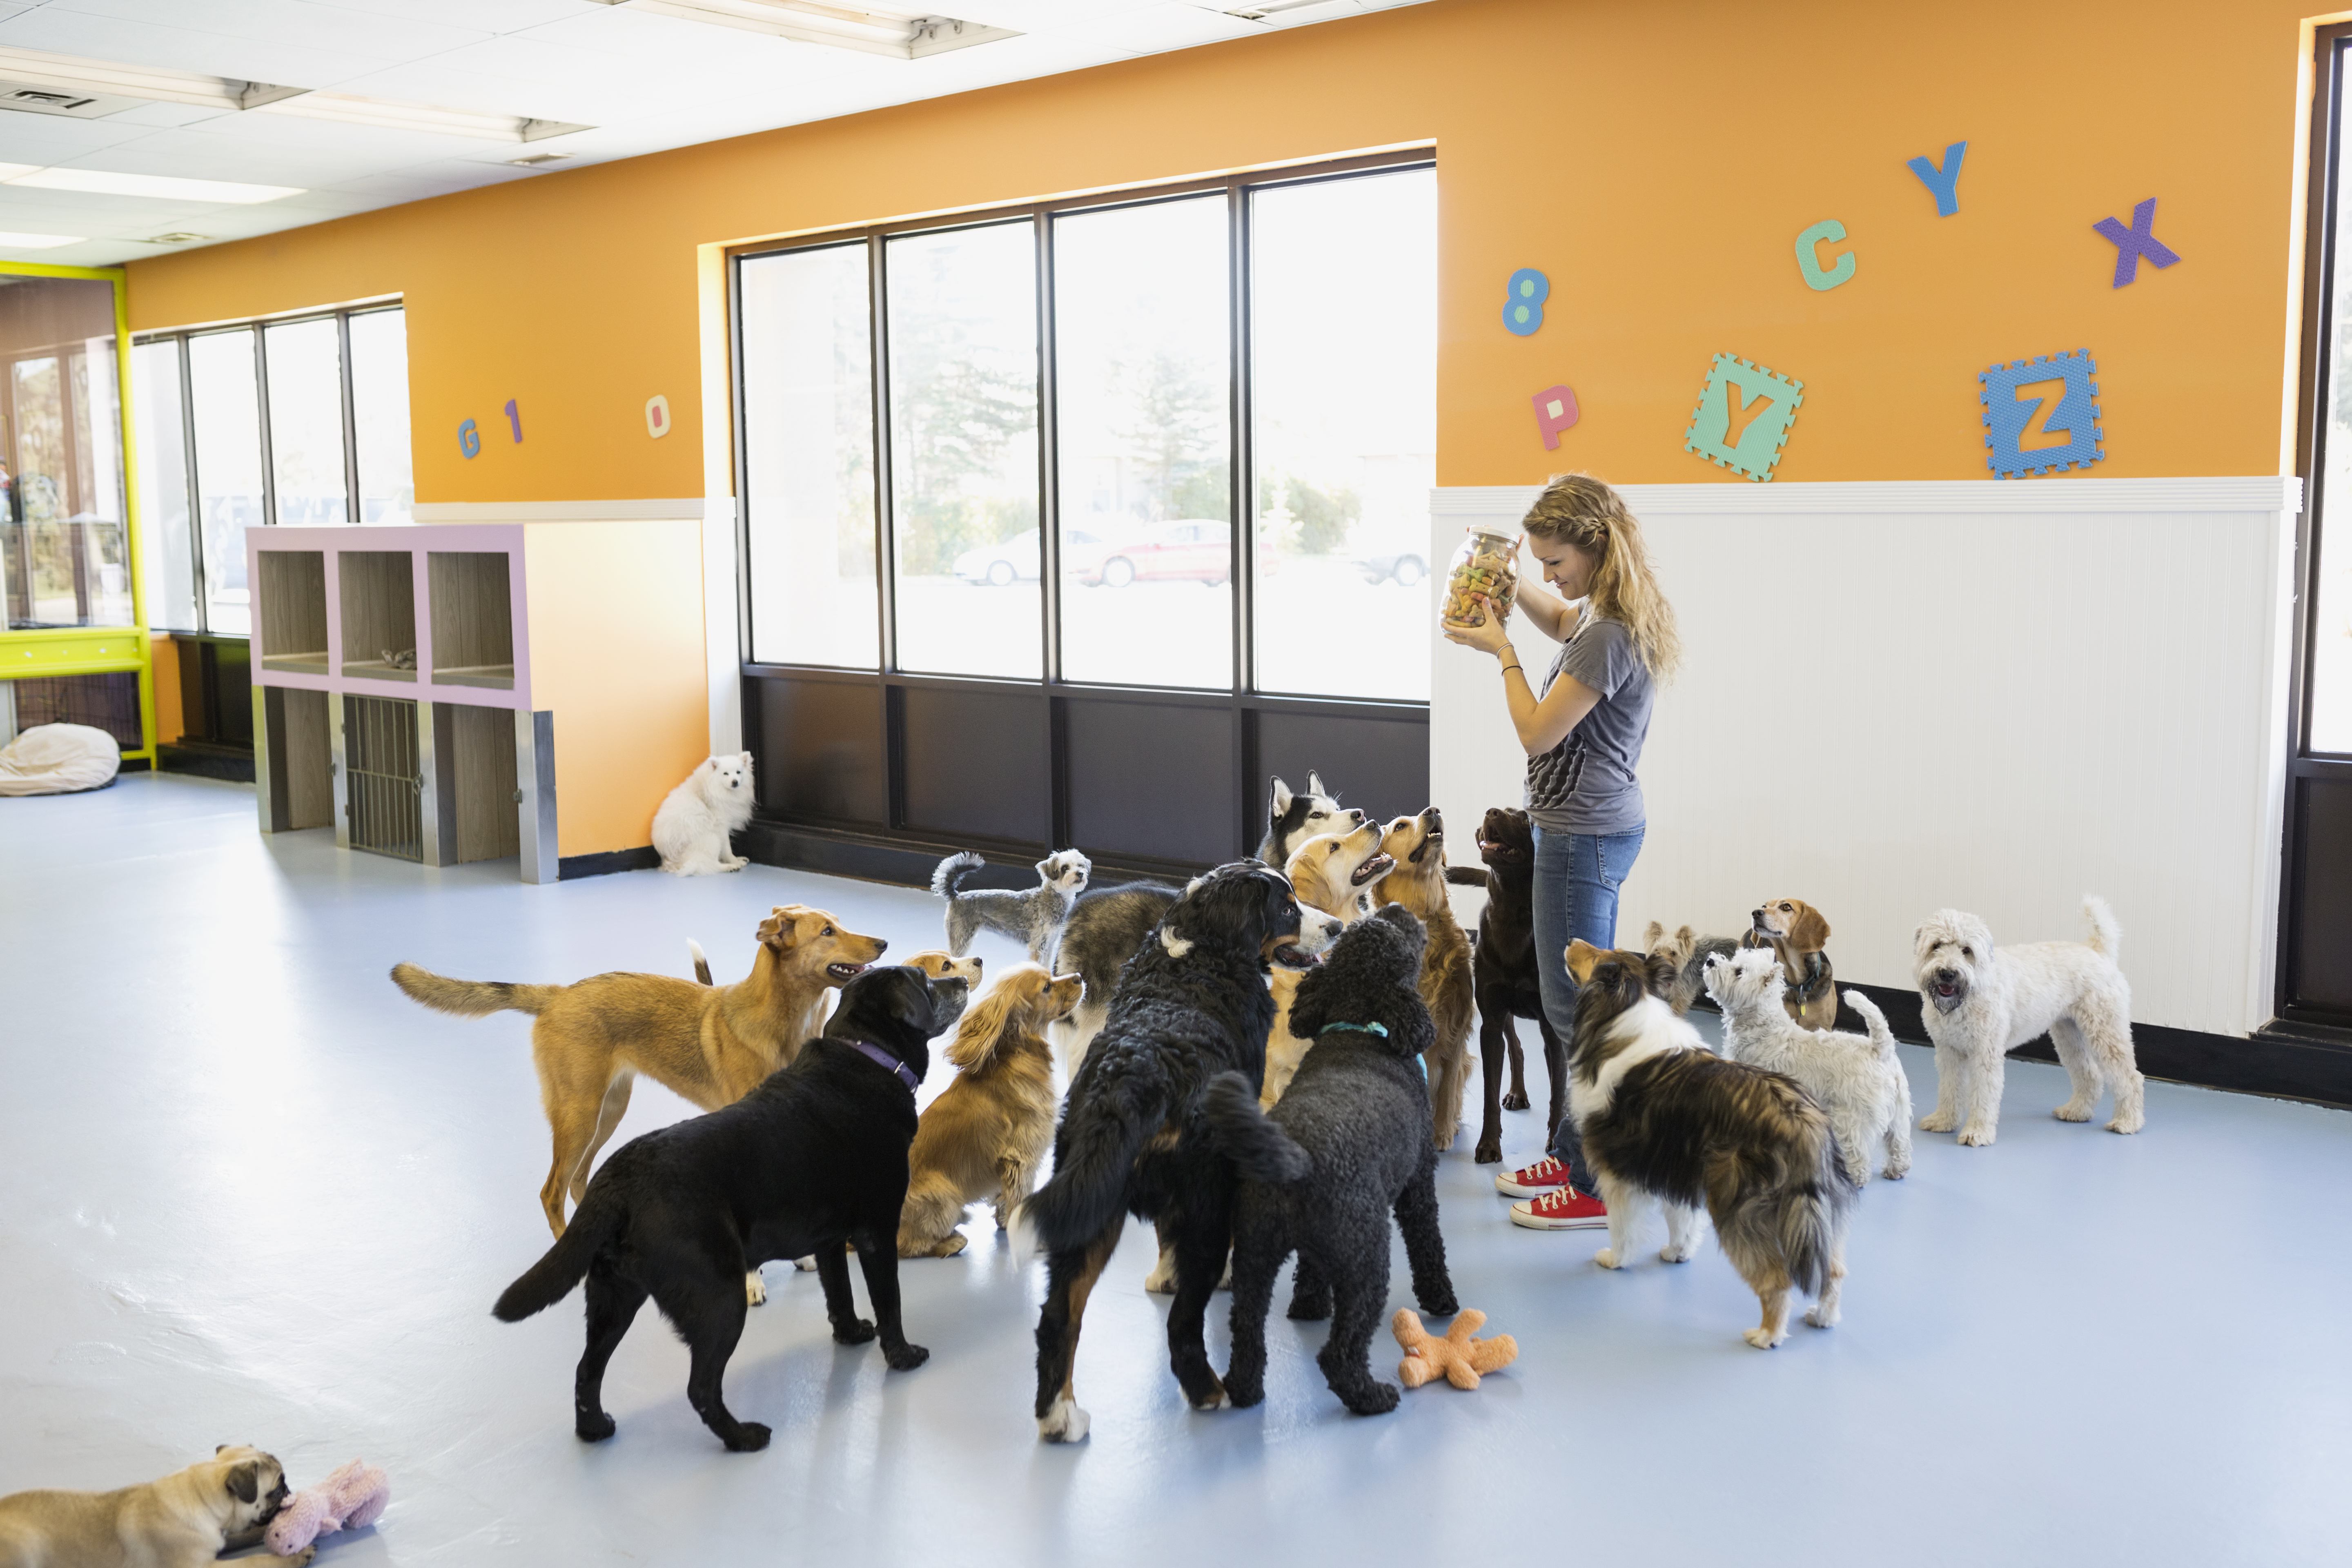 How to Apply for a Dog Kennel License in Illinois | Career Trend